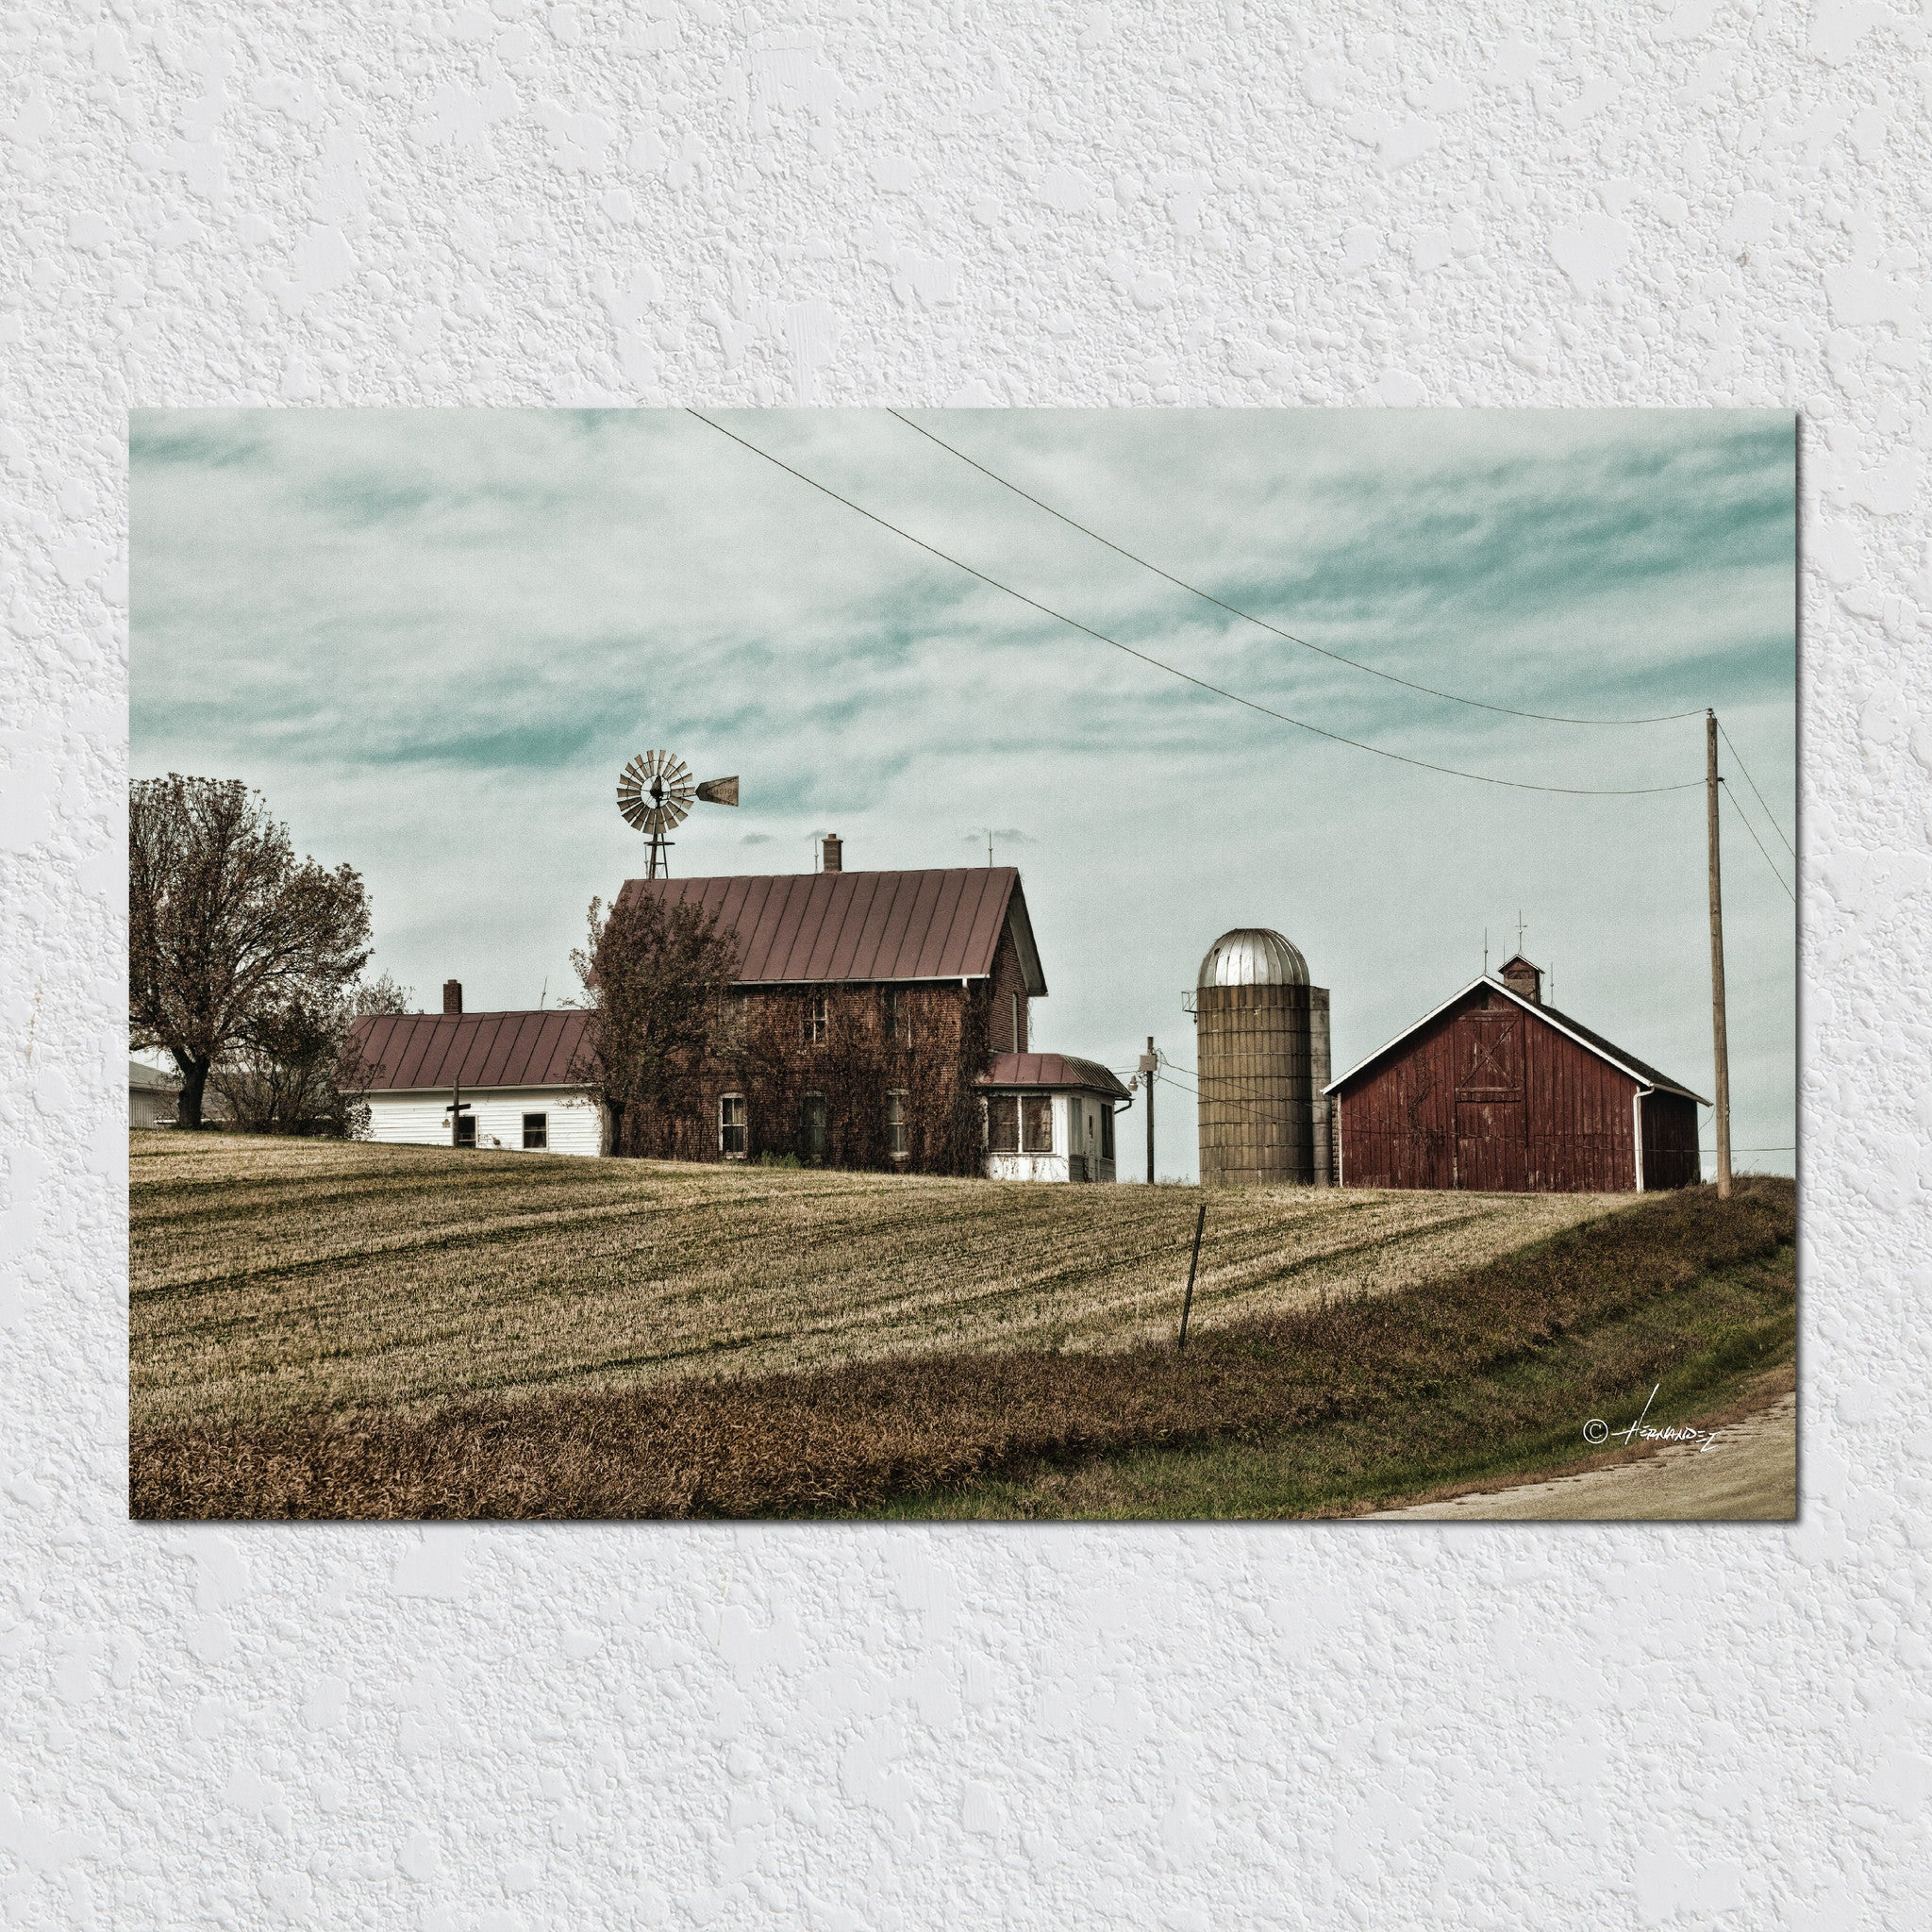 Americas Dairyland by Peter Hernandez